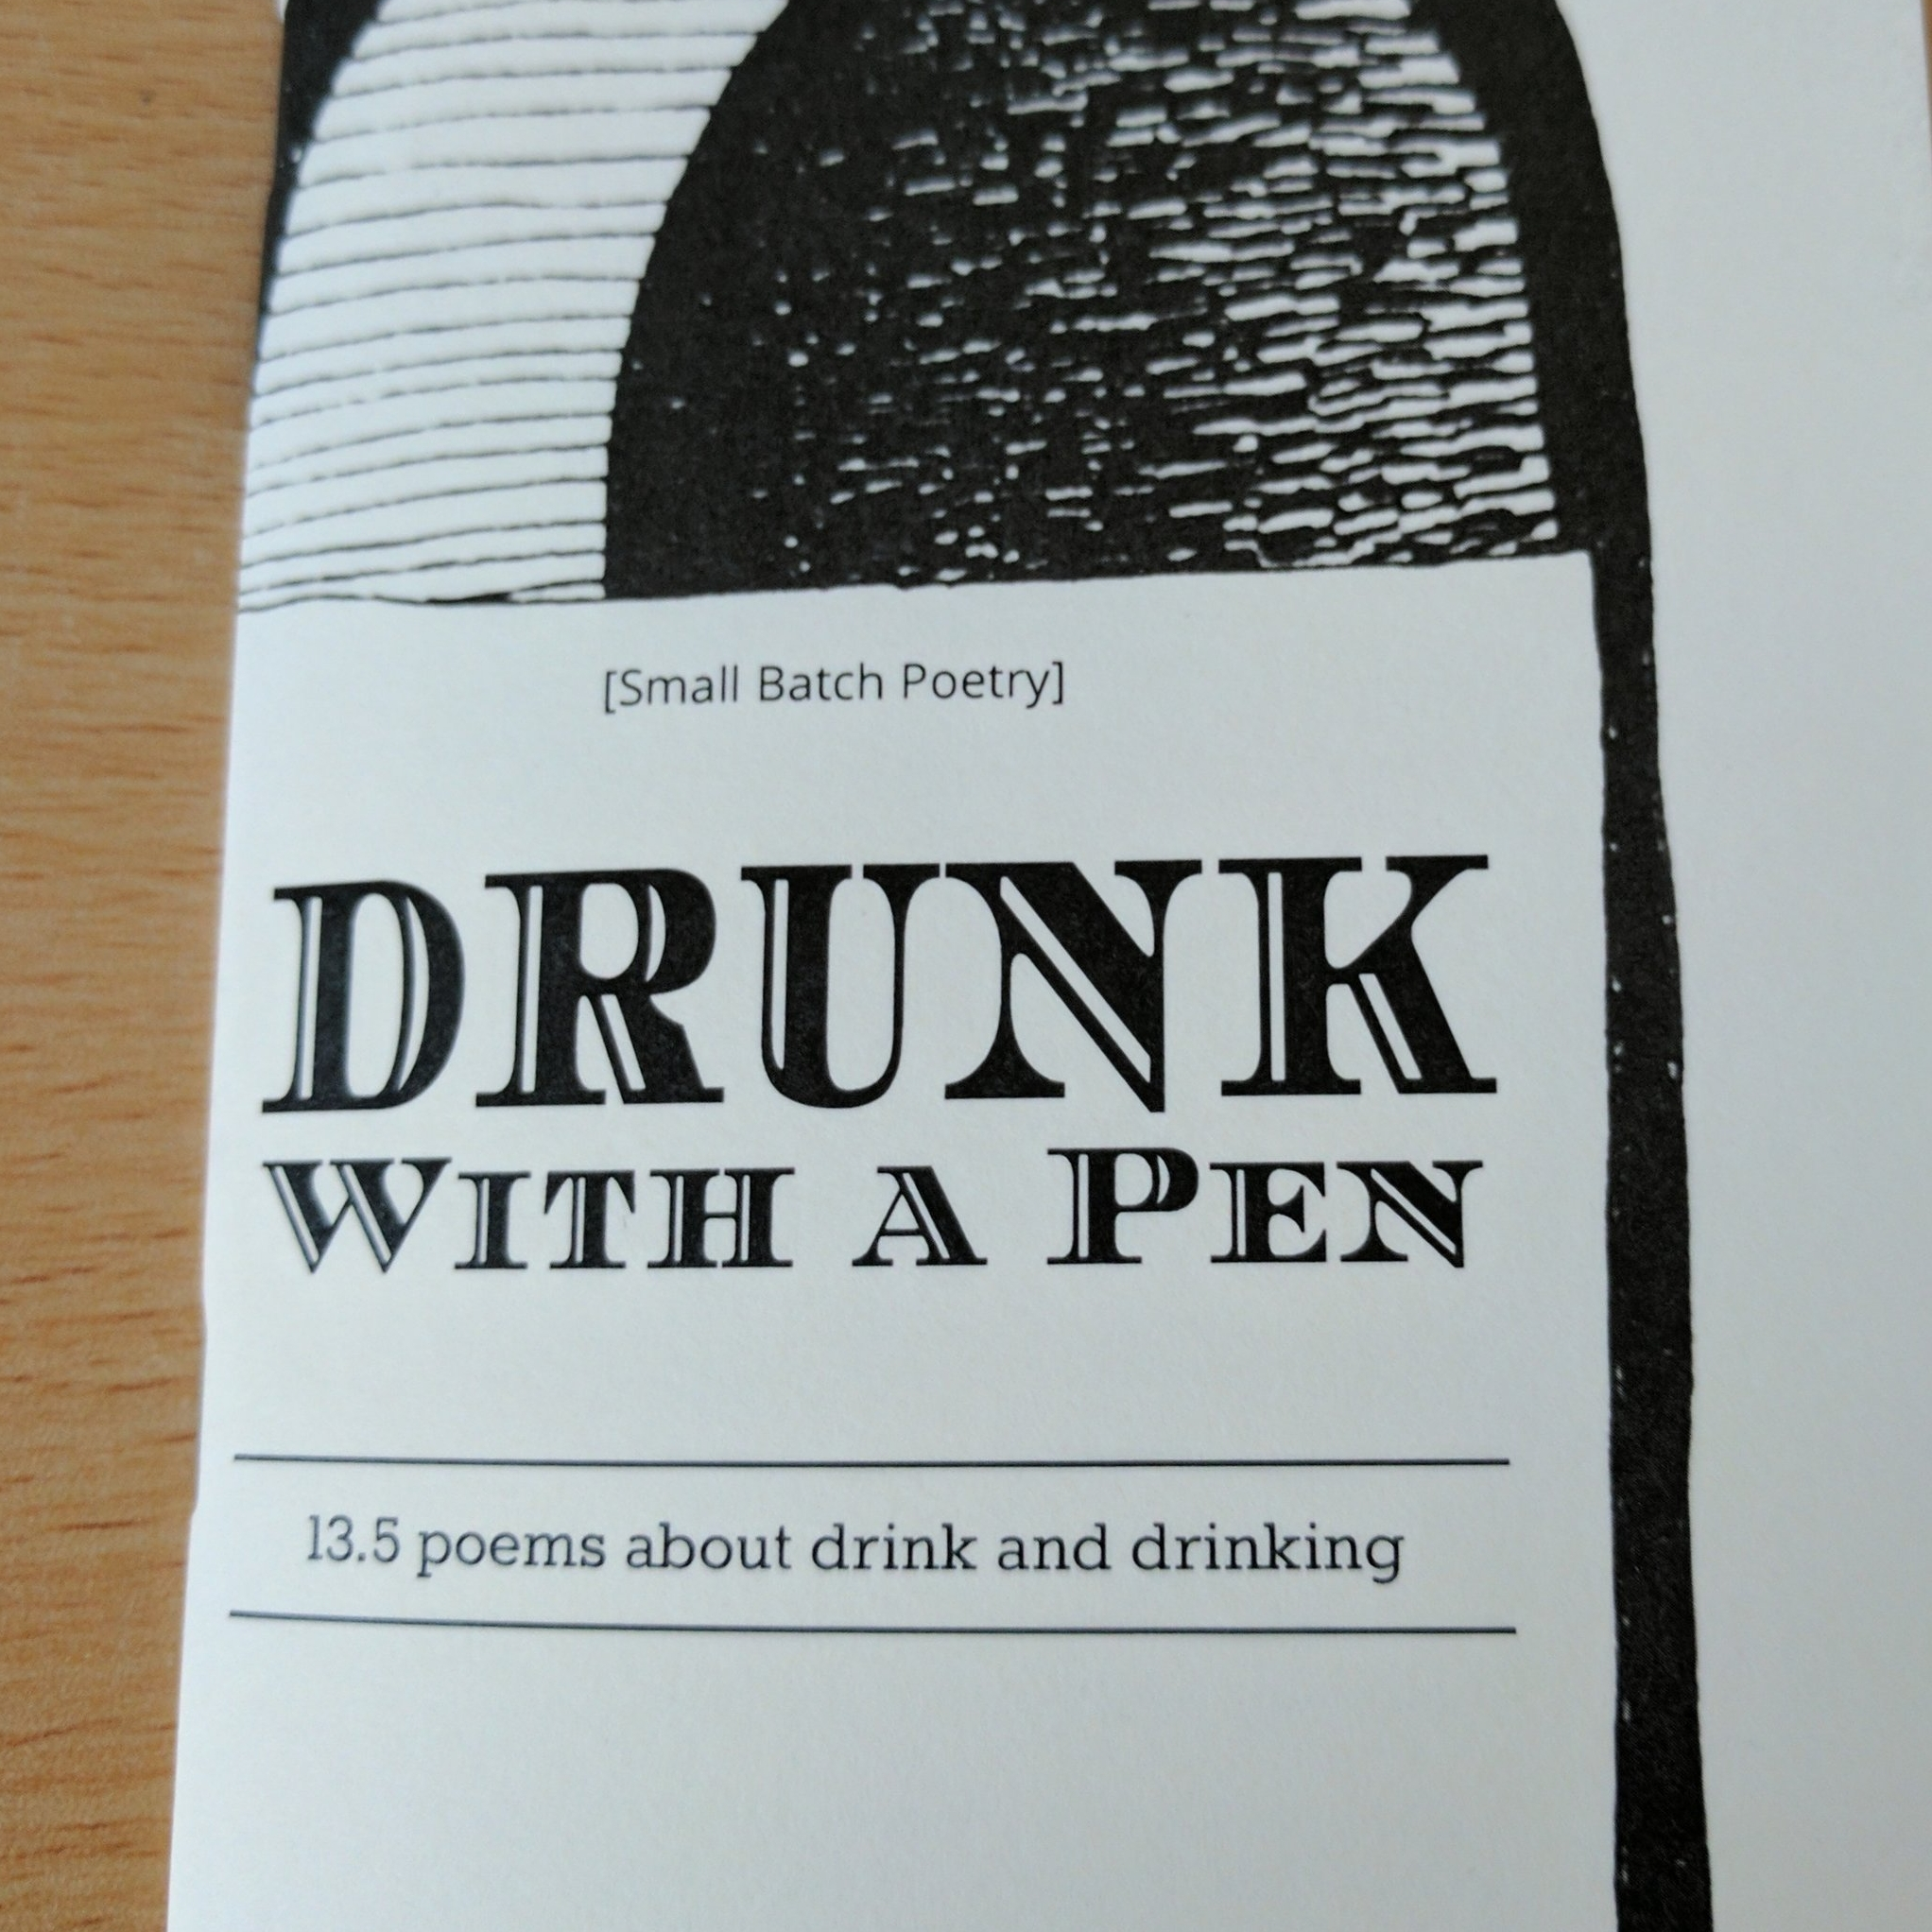 DRUNK WITH A PEN